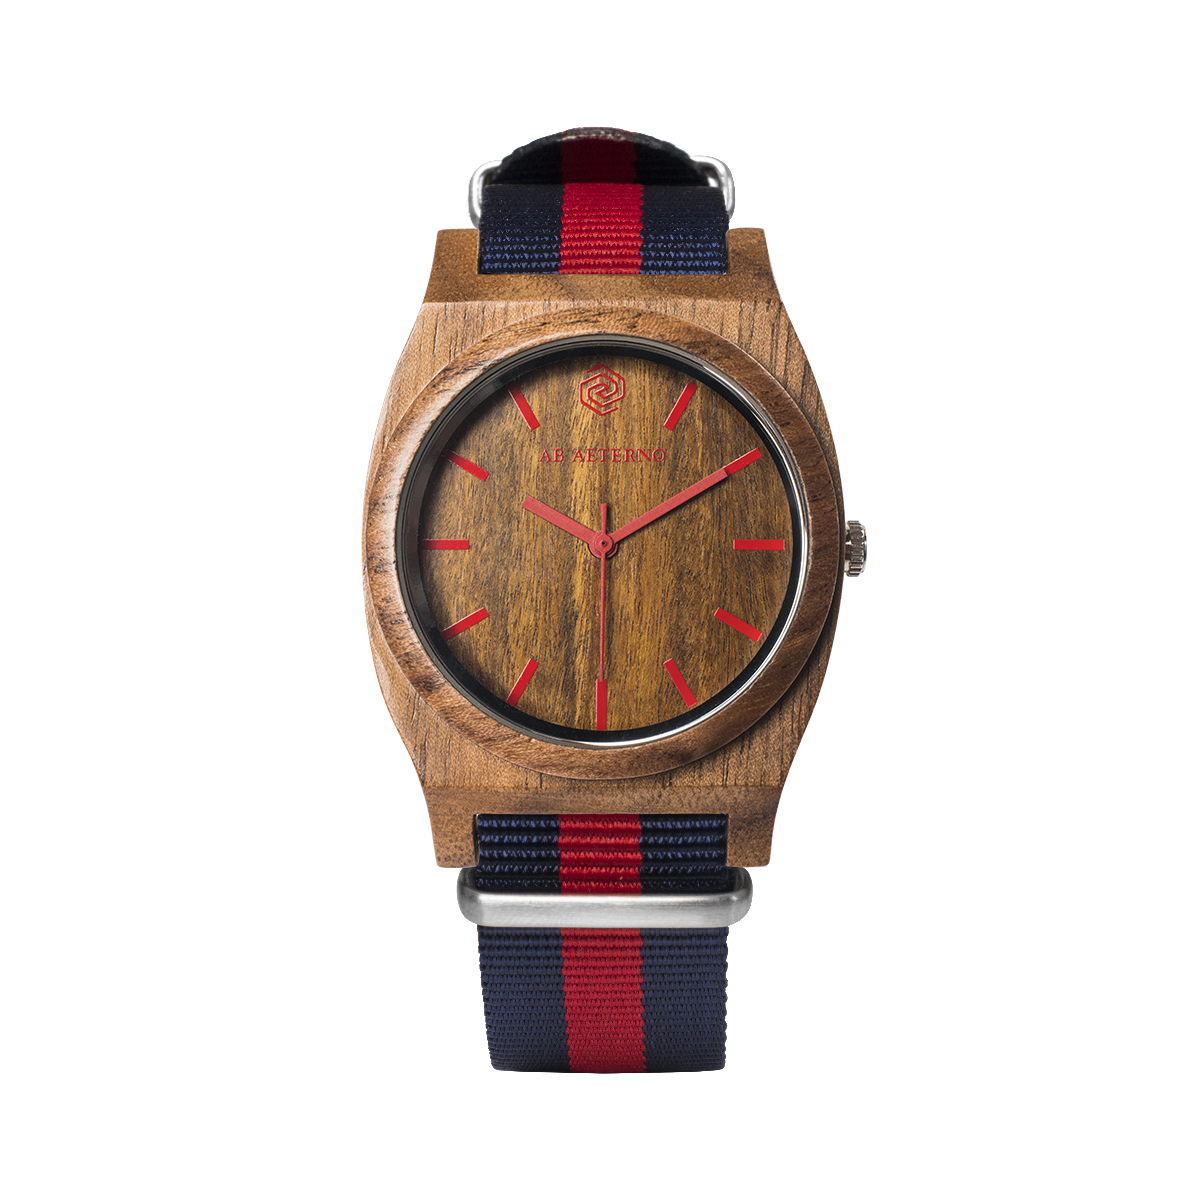 ab-aeterno-watches-1200px-horizon-collection-journey-red-blue-red